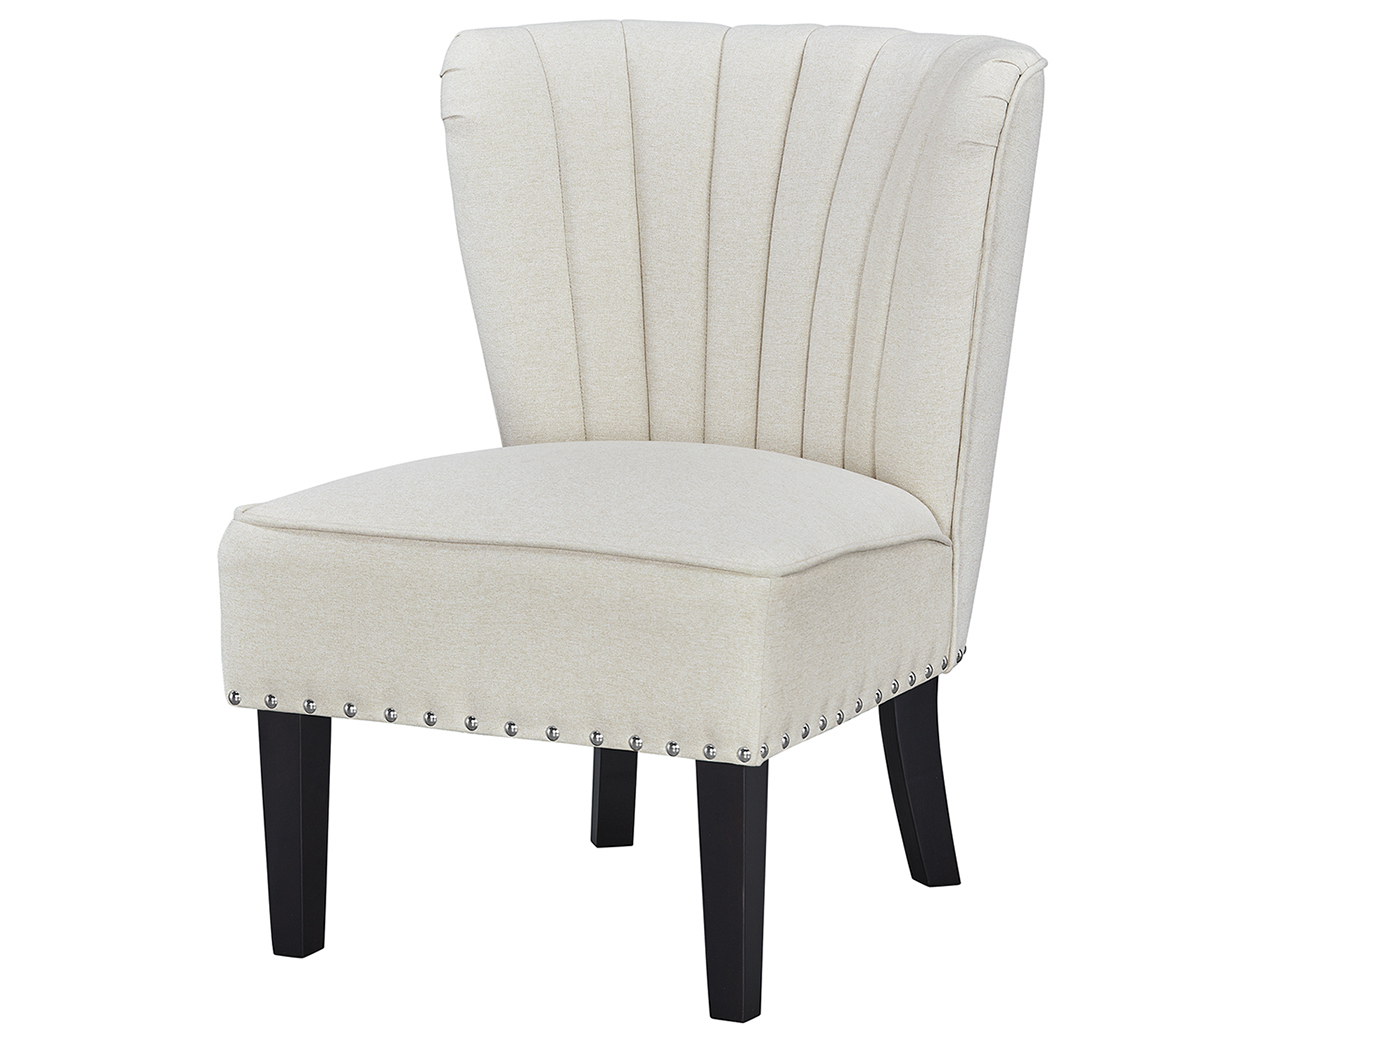 Layla Armless Chair